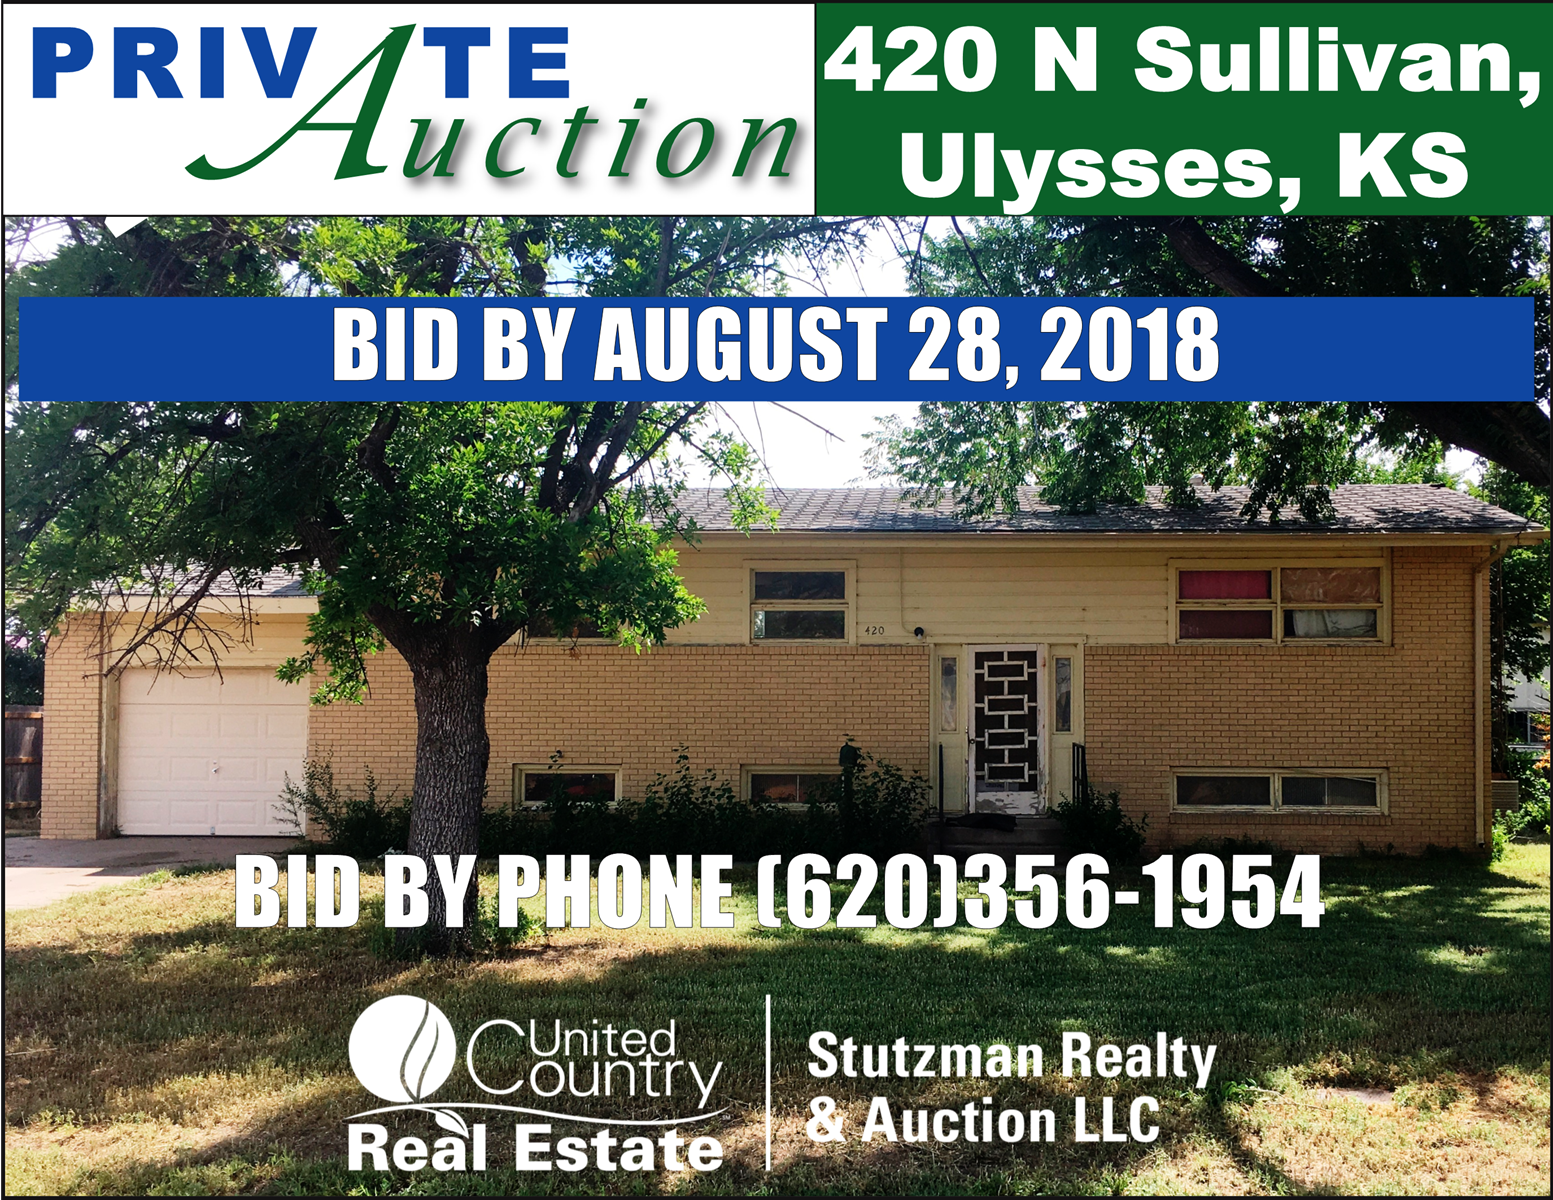 PRIVATE AUCTION - NO RESERVE ON LARGE HOME